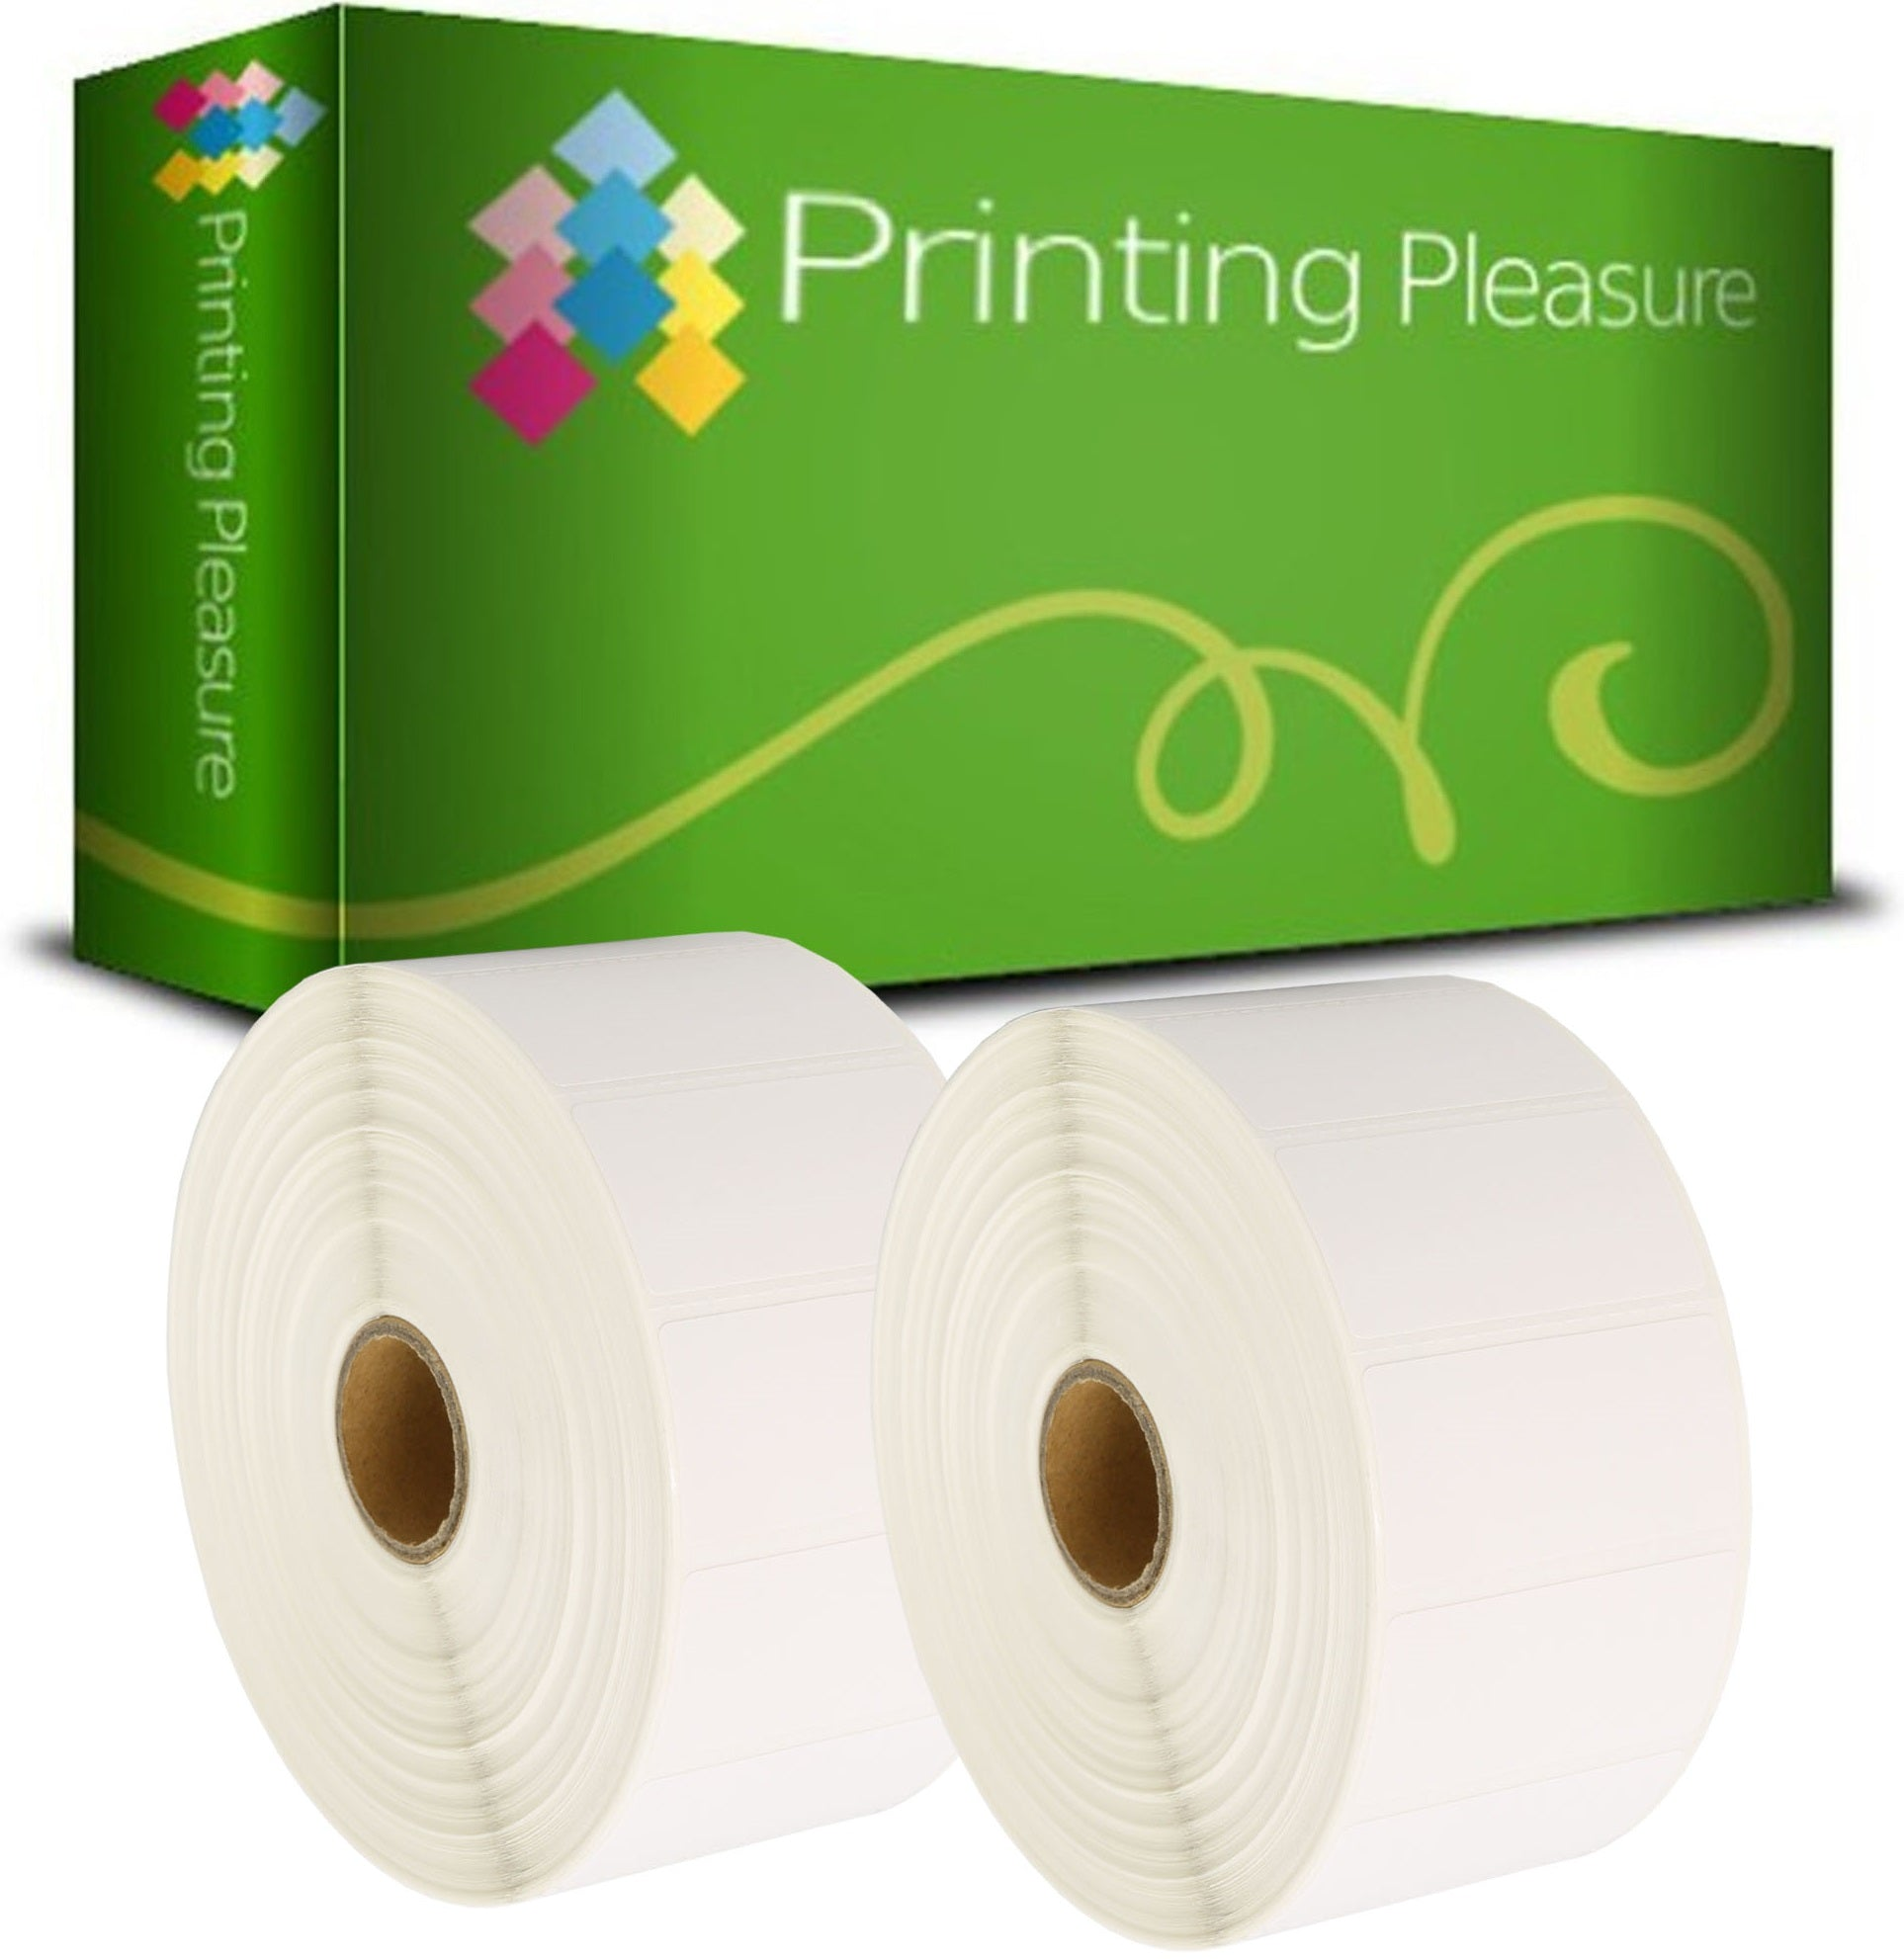 Compatible Zebra 52mm x 25mm White Direct Thermal Labels - Printing Pleasure